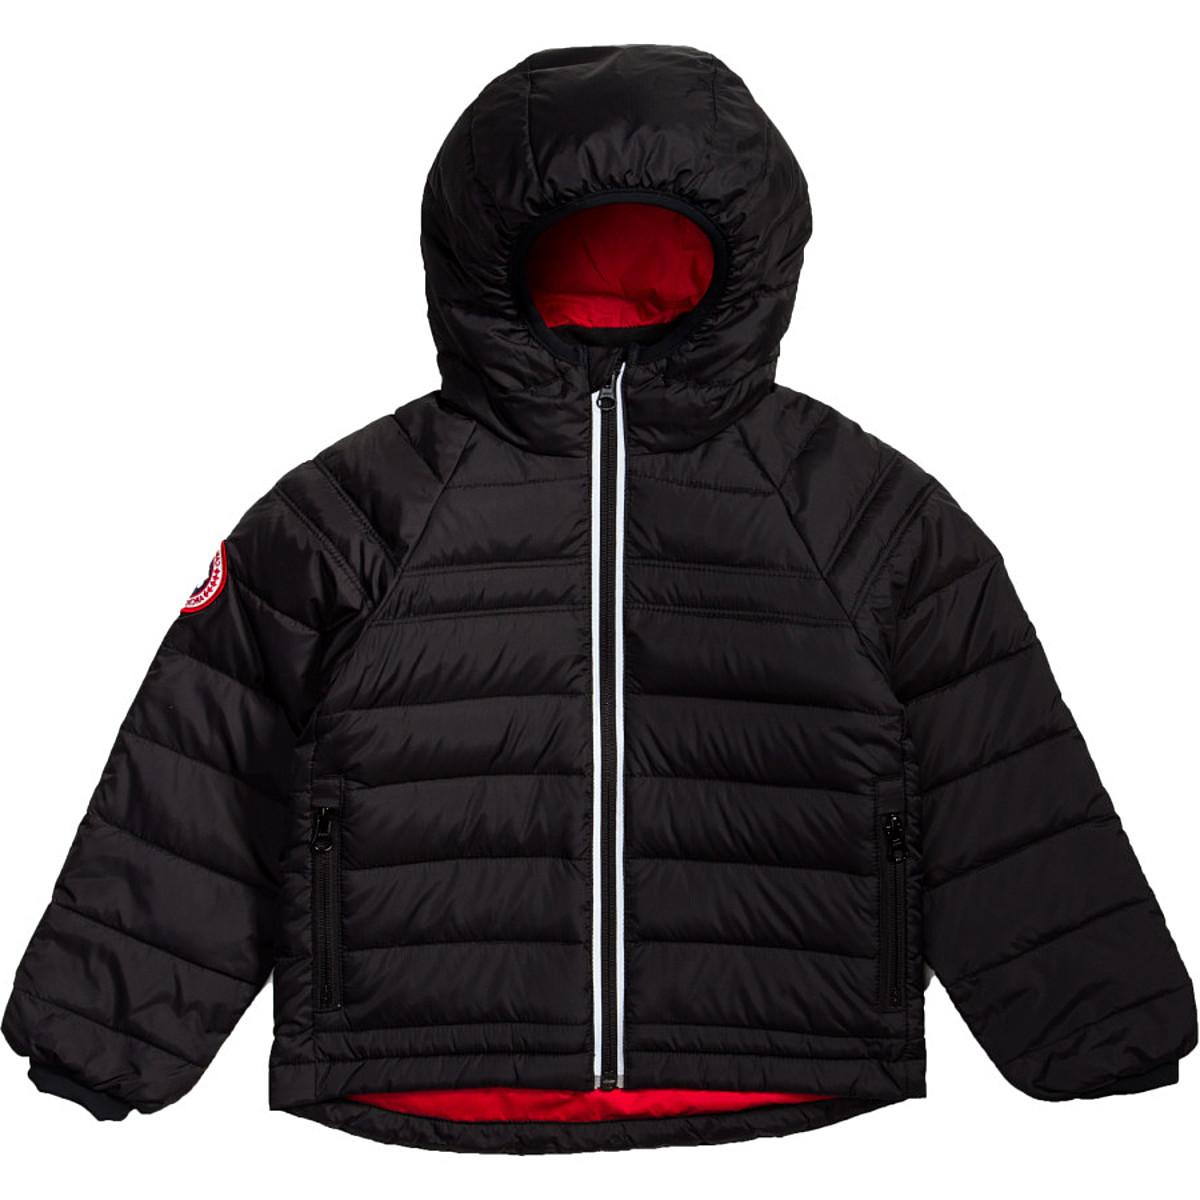 Canada Goose down sale fake - Canada Goose Girls Ski Jackets | Searchub